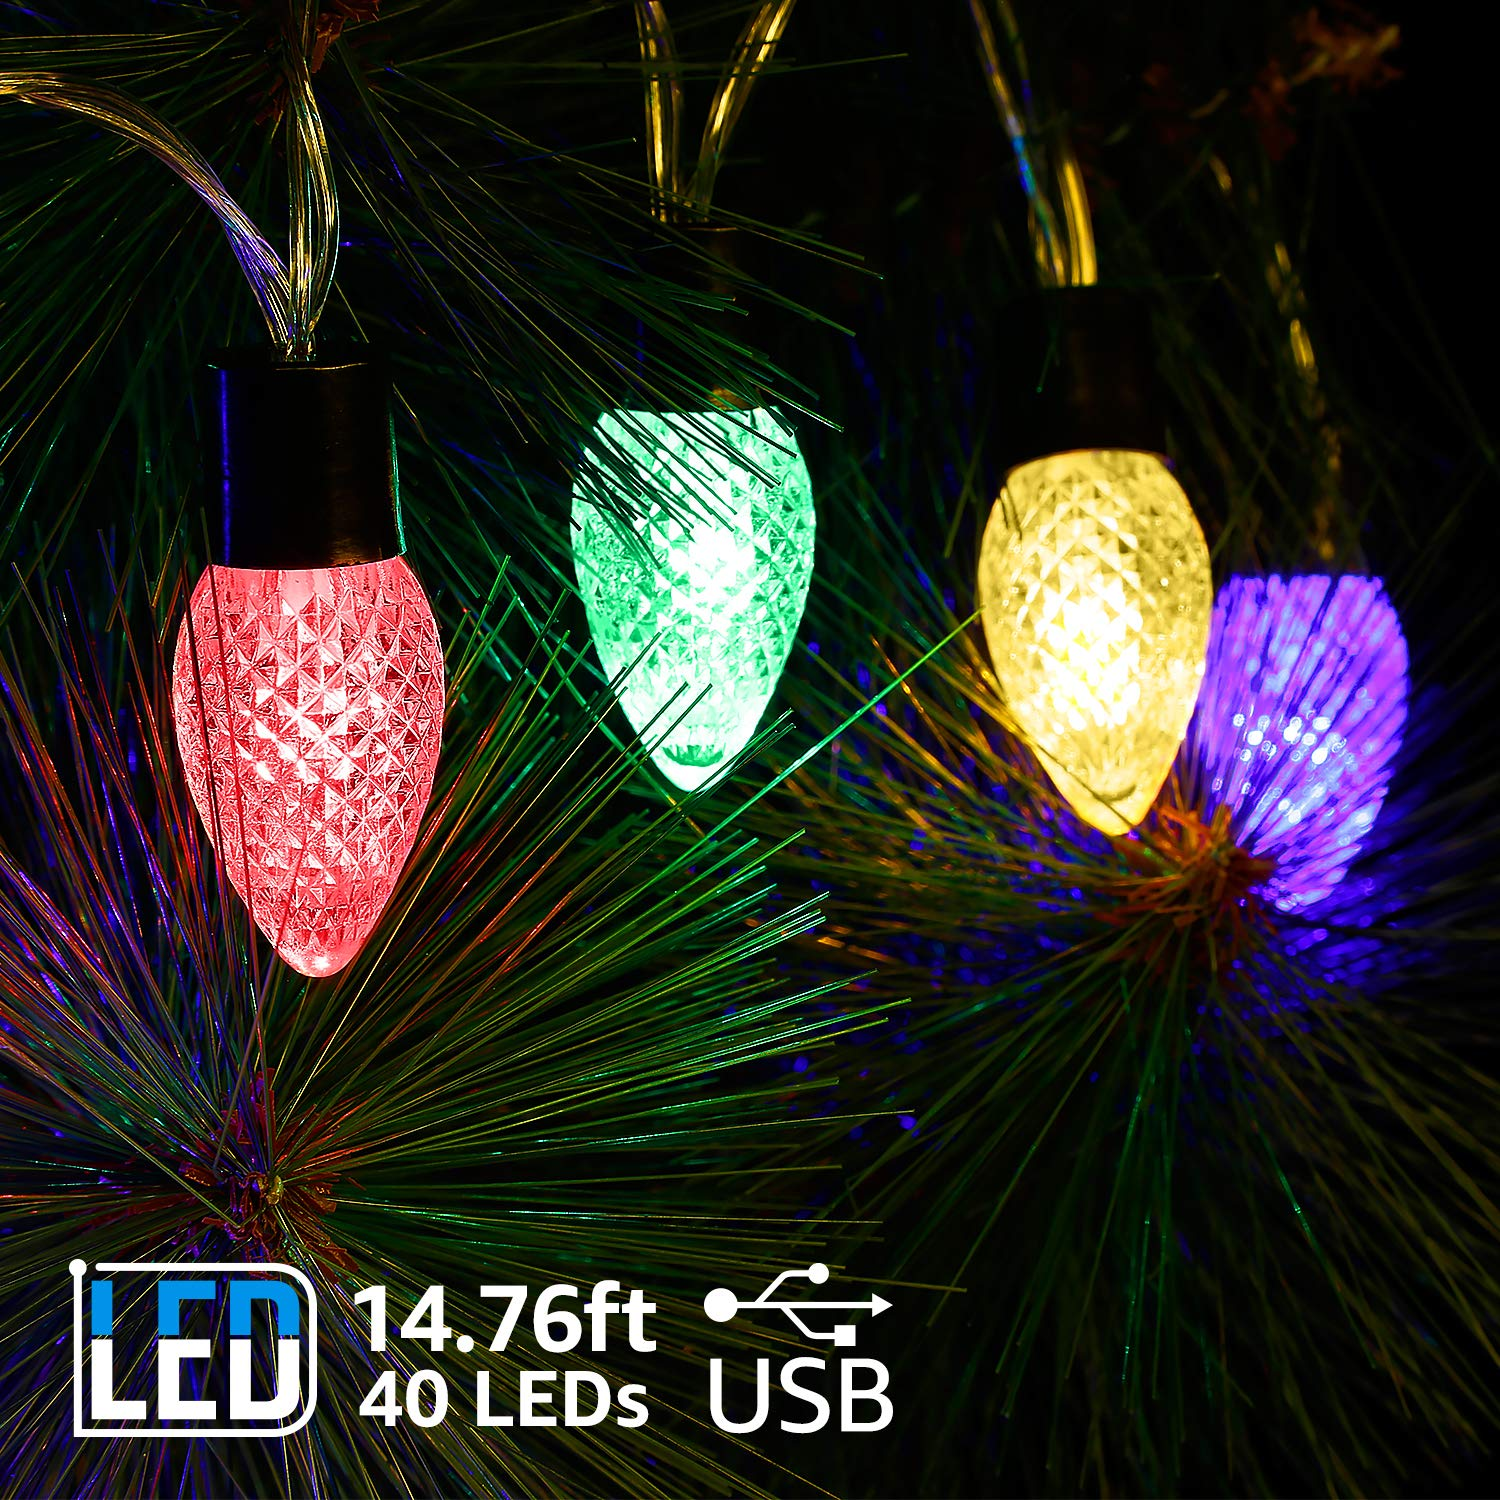 TORCHSTAR 14.76ft 40 LEDs Strawberry String Lights USB Supplied Multi Color Lighting for Halloween Christmas New Year Party Holiday Celebration Wedding Decoration